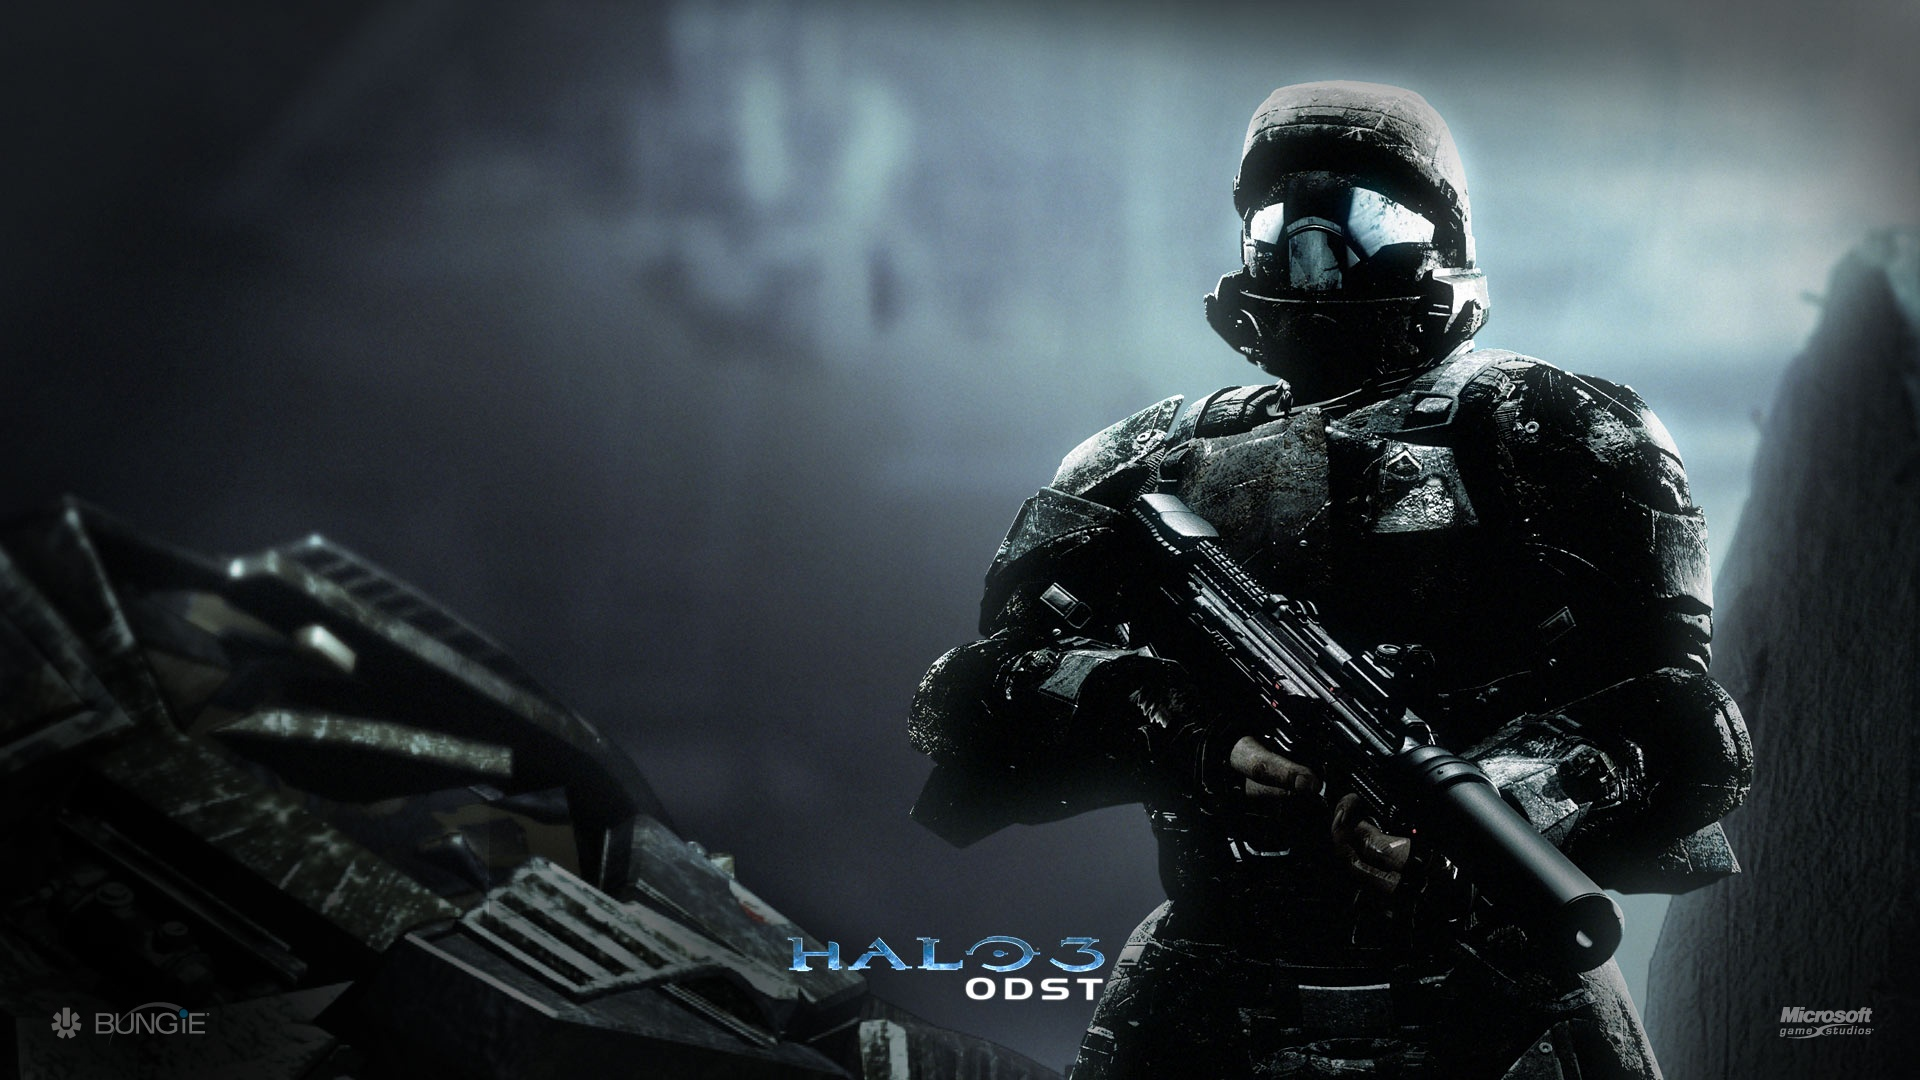 Wallpaper Halo 3 Odst 1920x1080 Full Hd 2k Picture Image